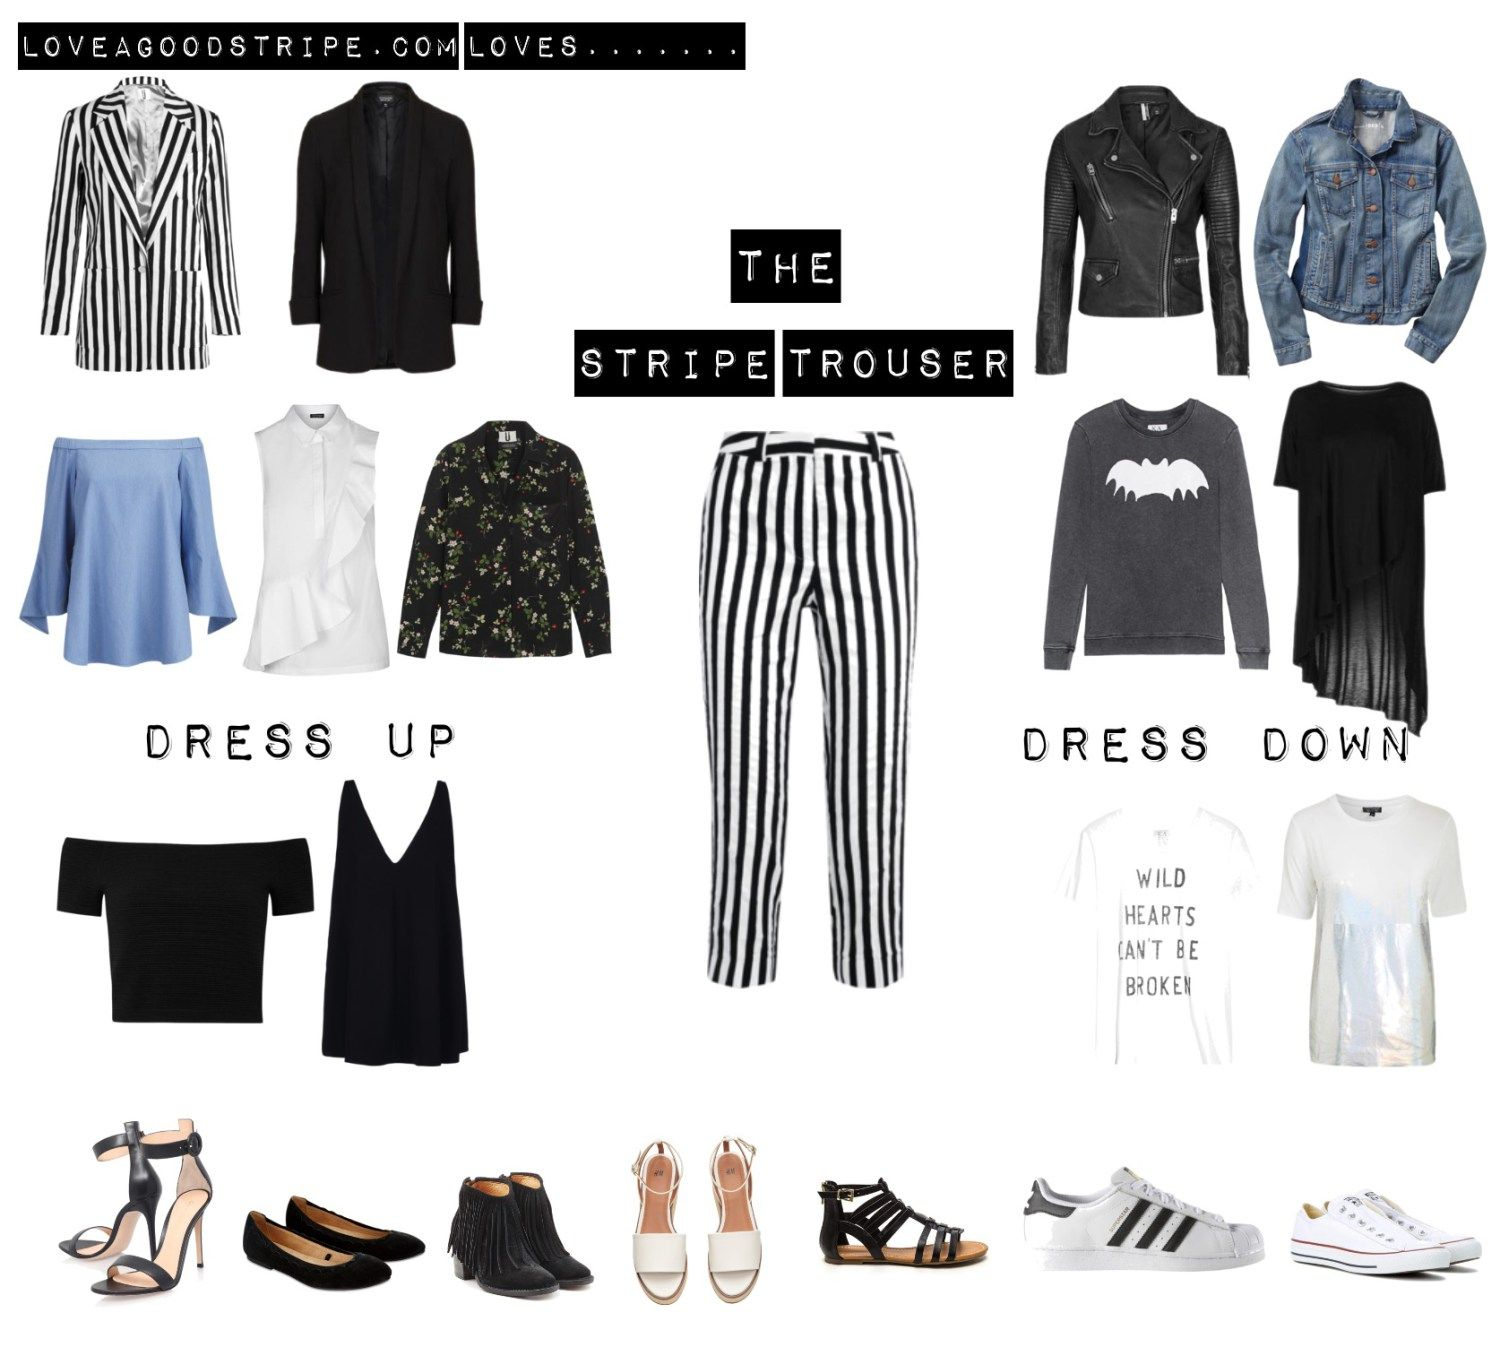 The splendid stripe trouser moment - Love a good stripe blog